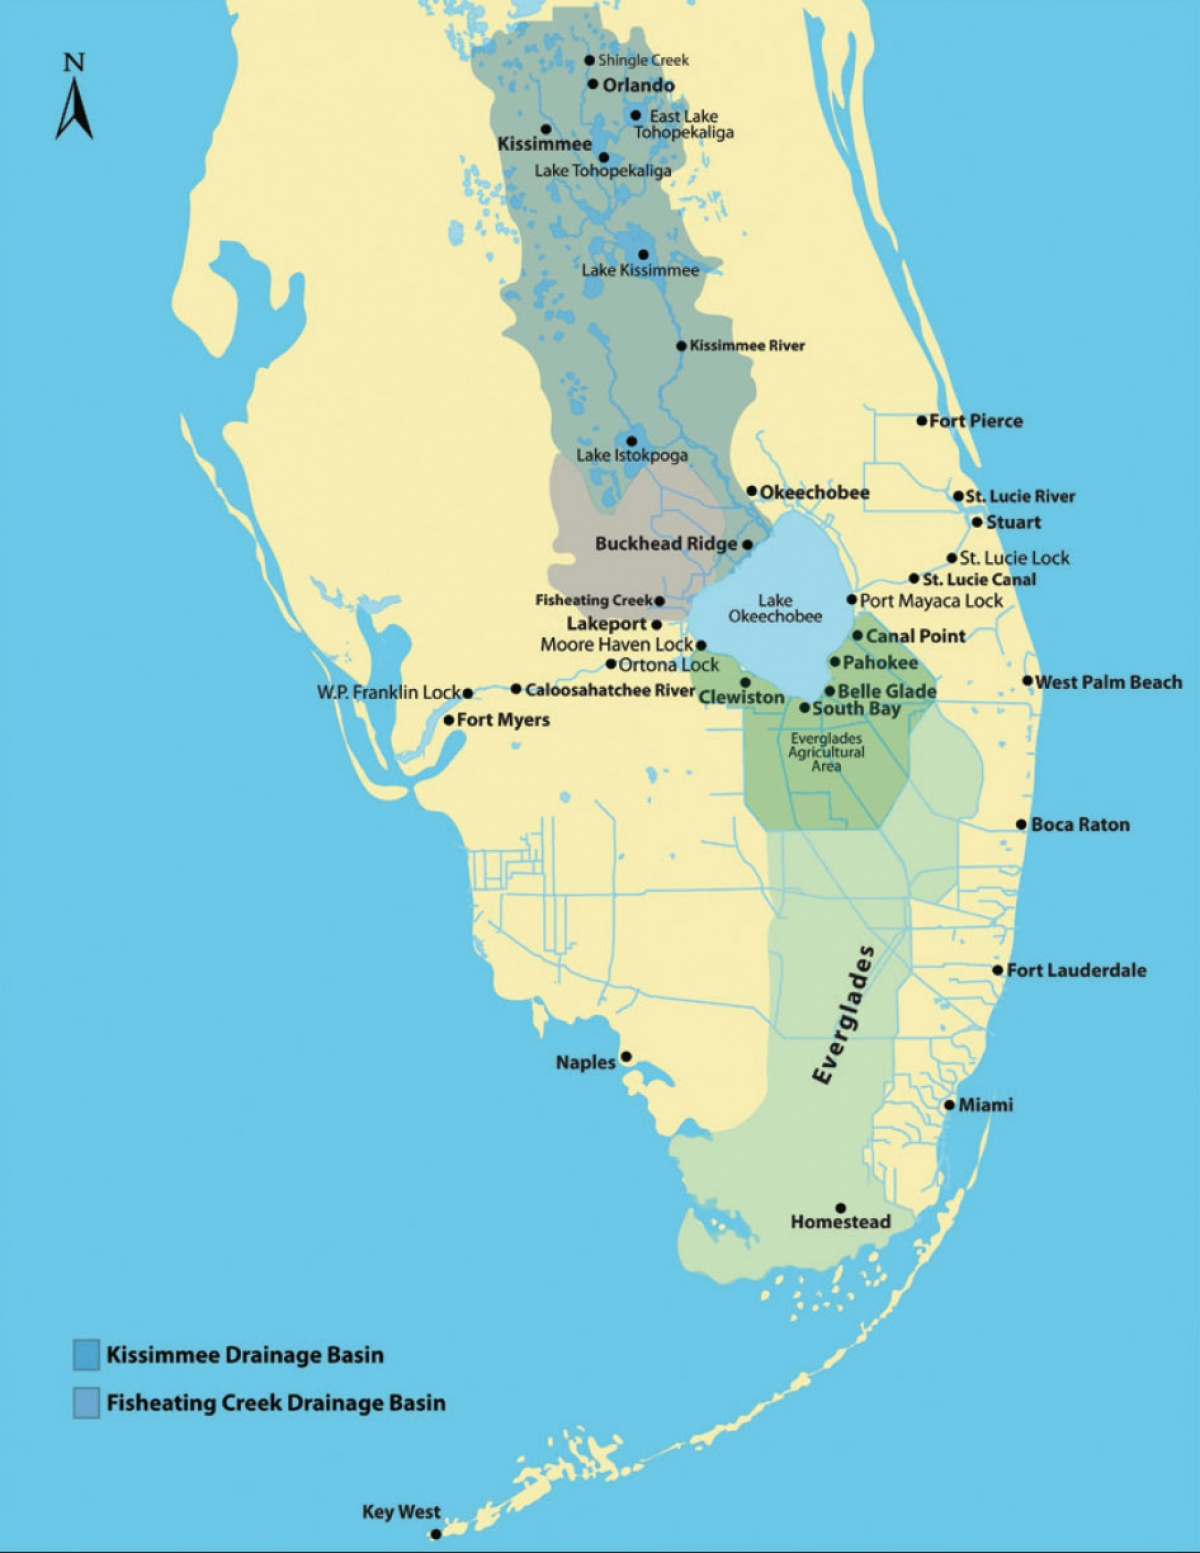 Scott Signs Controversial Water Bill to Start 2016 Florida